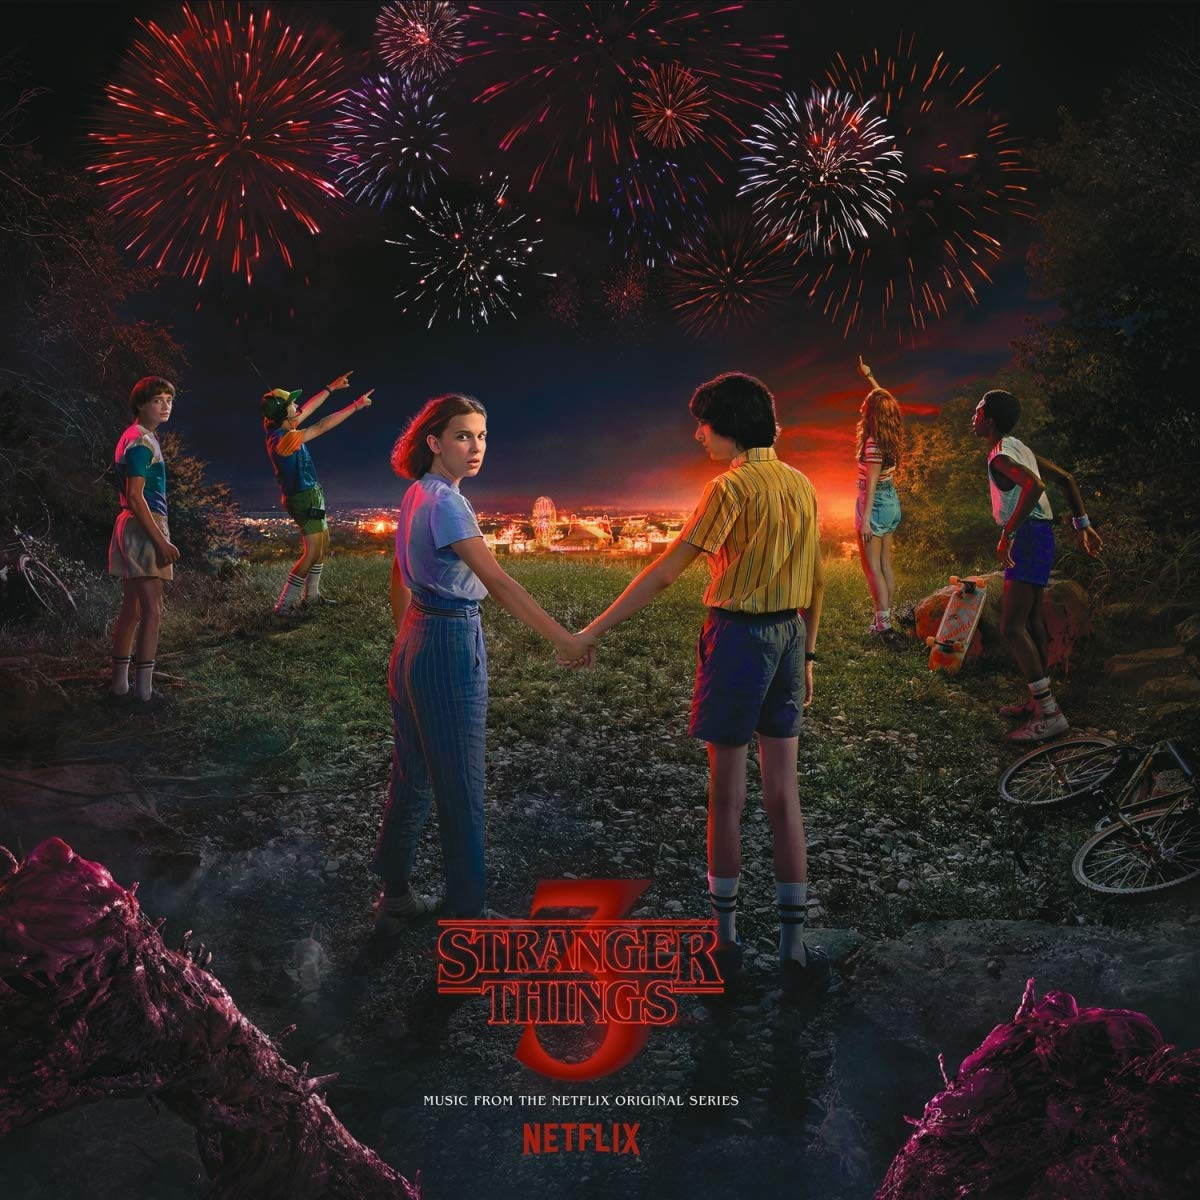 Stranger Things: Soundtrack from the Netflix Original Series, Season 3 by SMG